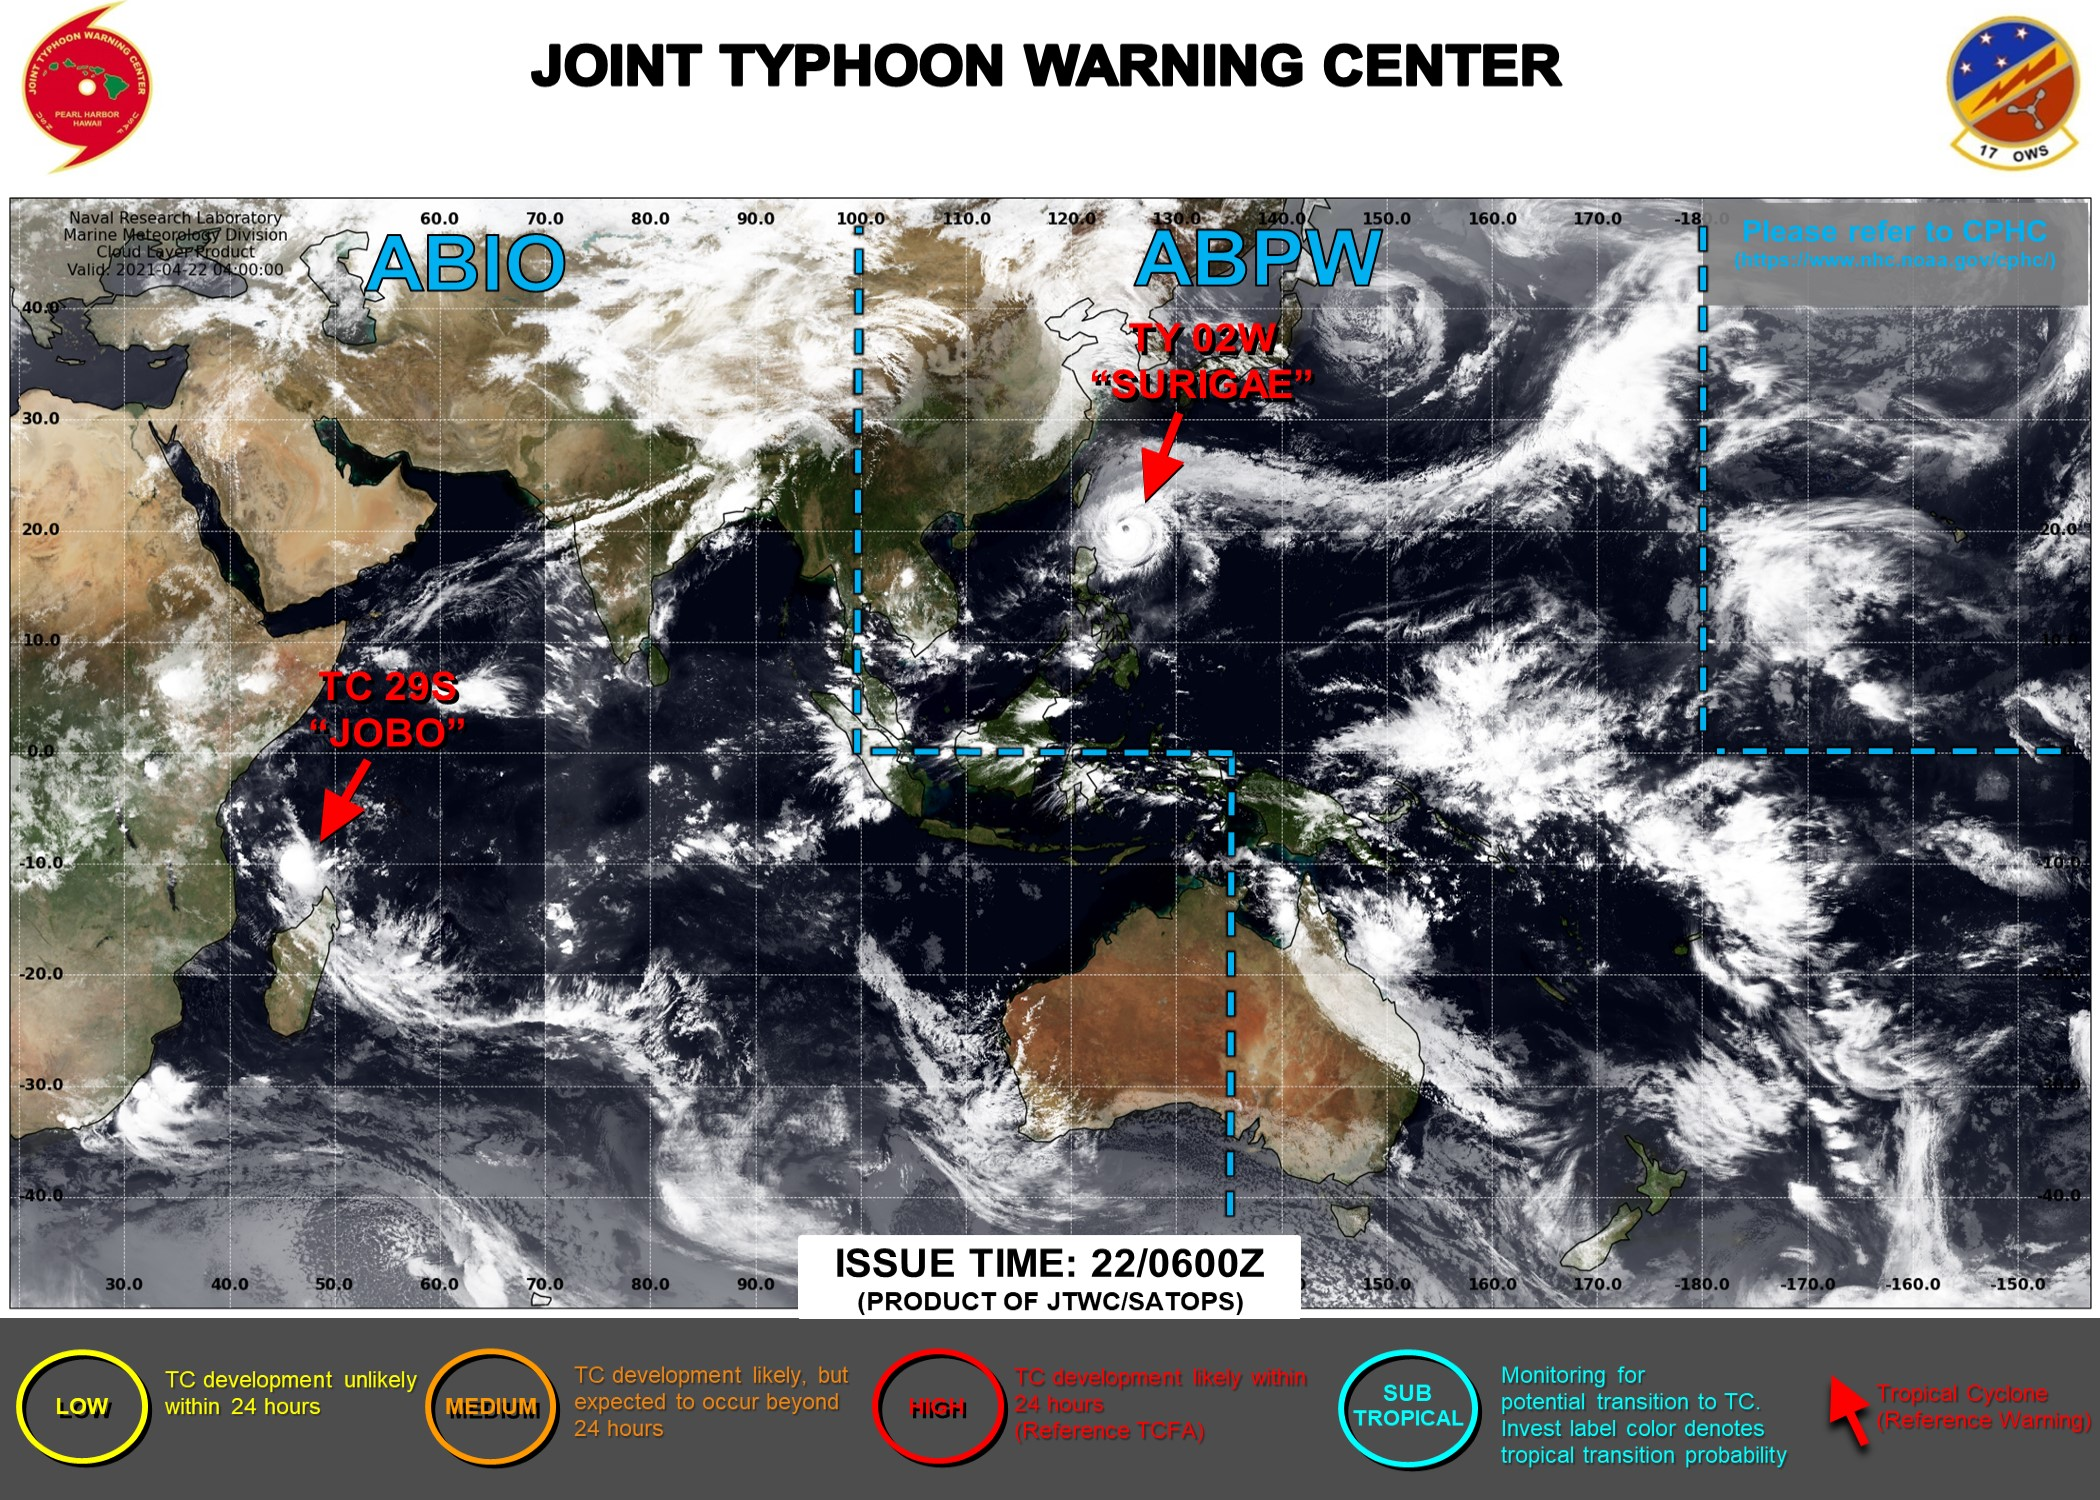 22/06UTC. THE JTWC IS ISSUING 6HOURLY WARNINGS ON 02W(SURIGAE AND 12HOURLY WARNINGS ON 29S(JOBO). 3HOURLY SATELLITE BULLETINS ARE ISSUED FOR BOTH SYSTEMS.